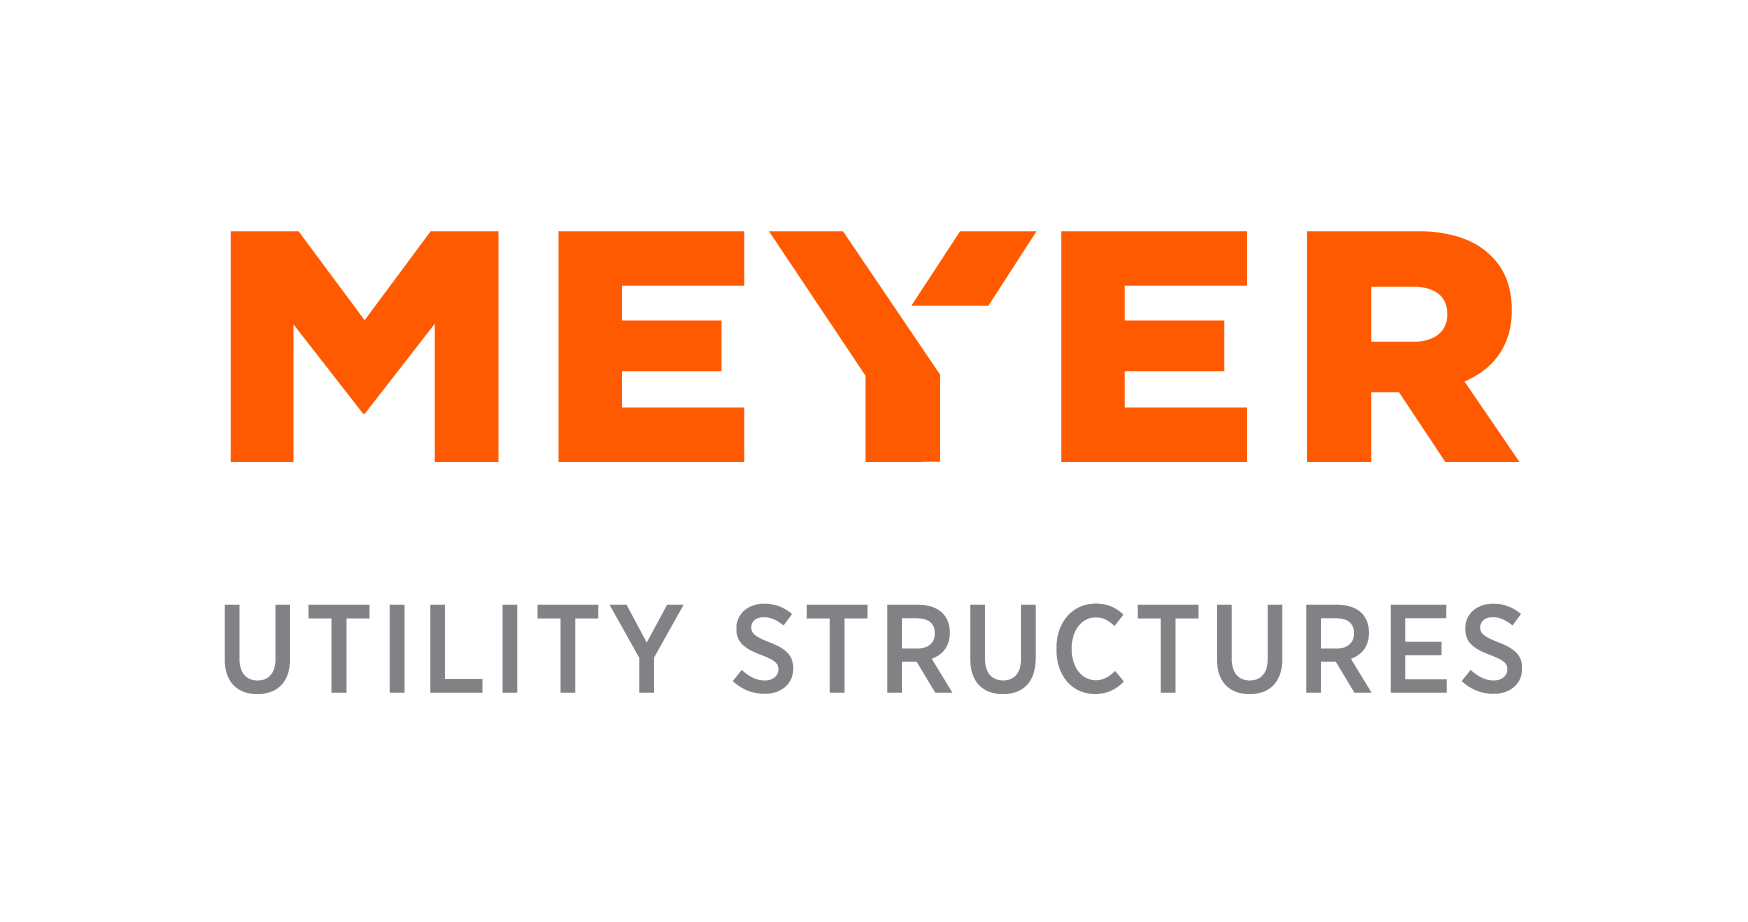 Meyer Utility Structures, LLC.